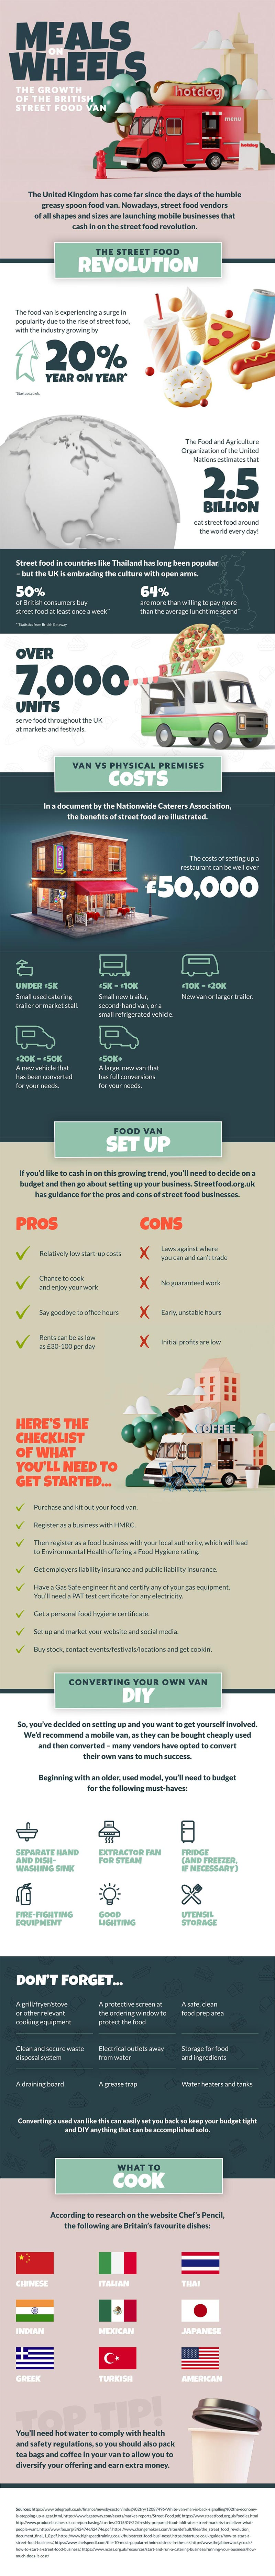 Business is booming infographic